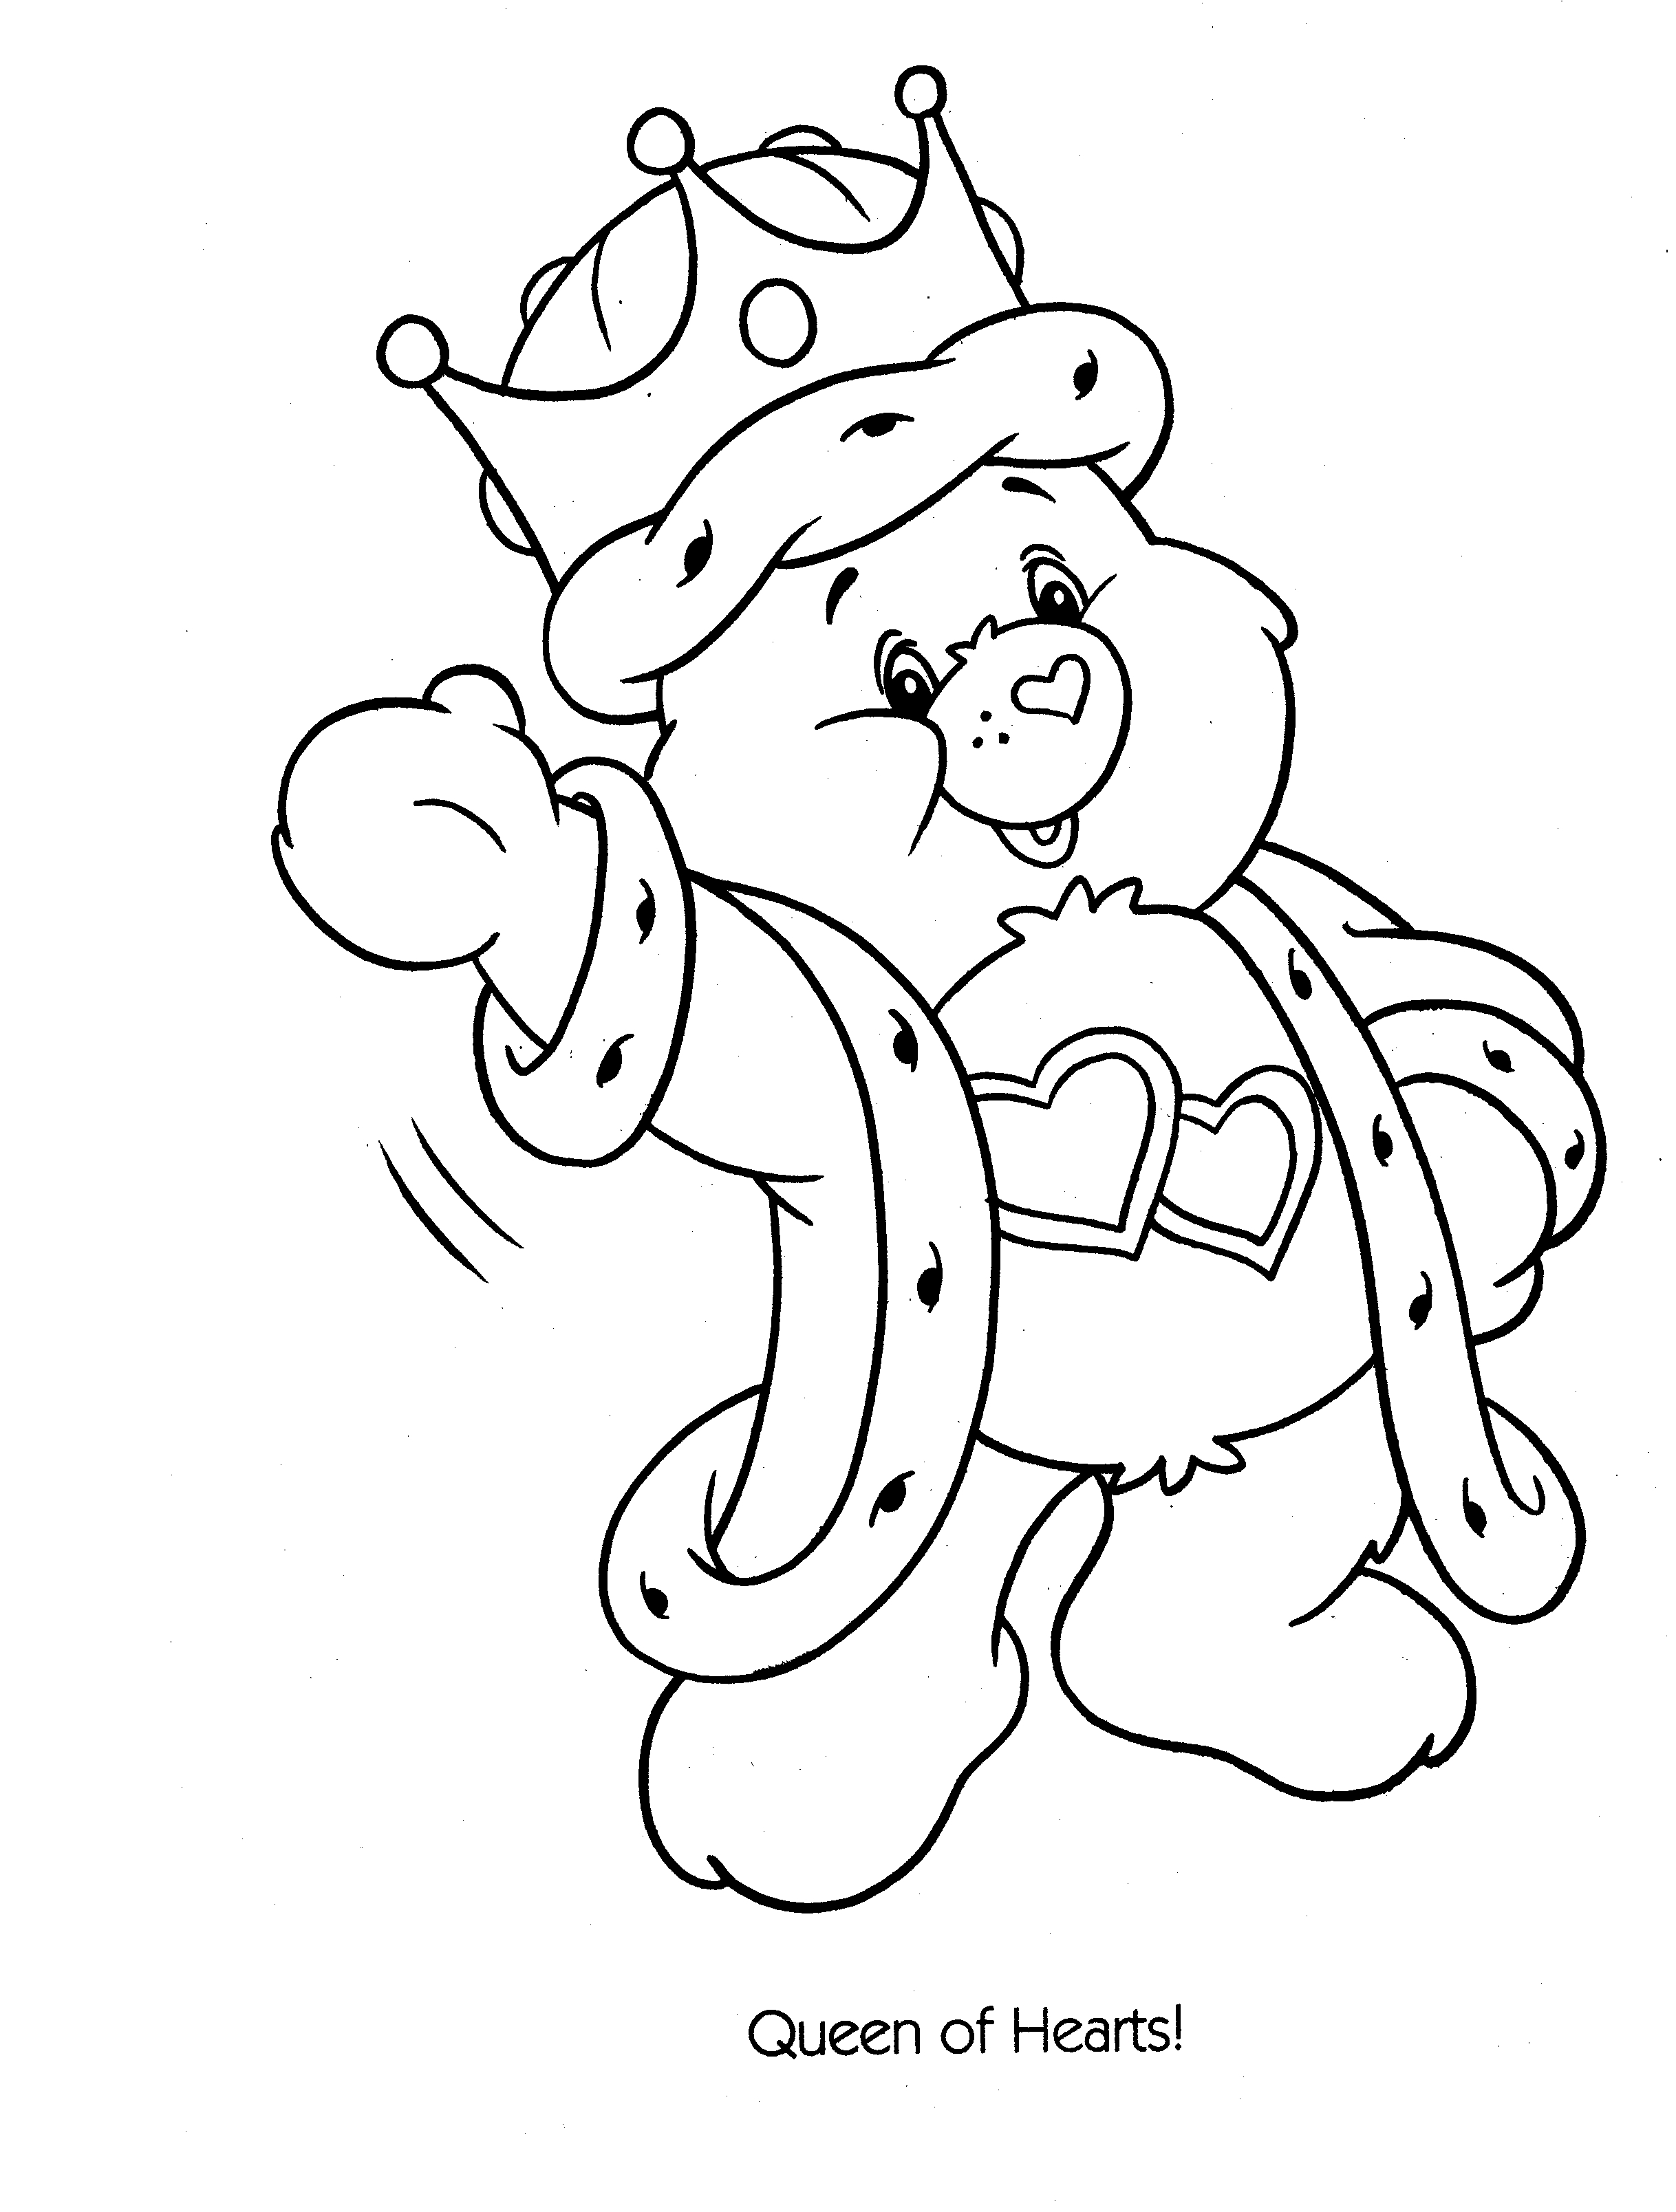 hugs and kisses coloring pages - photo#11